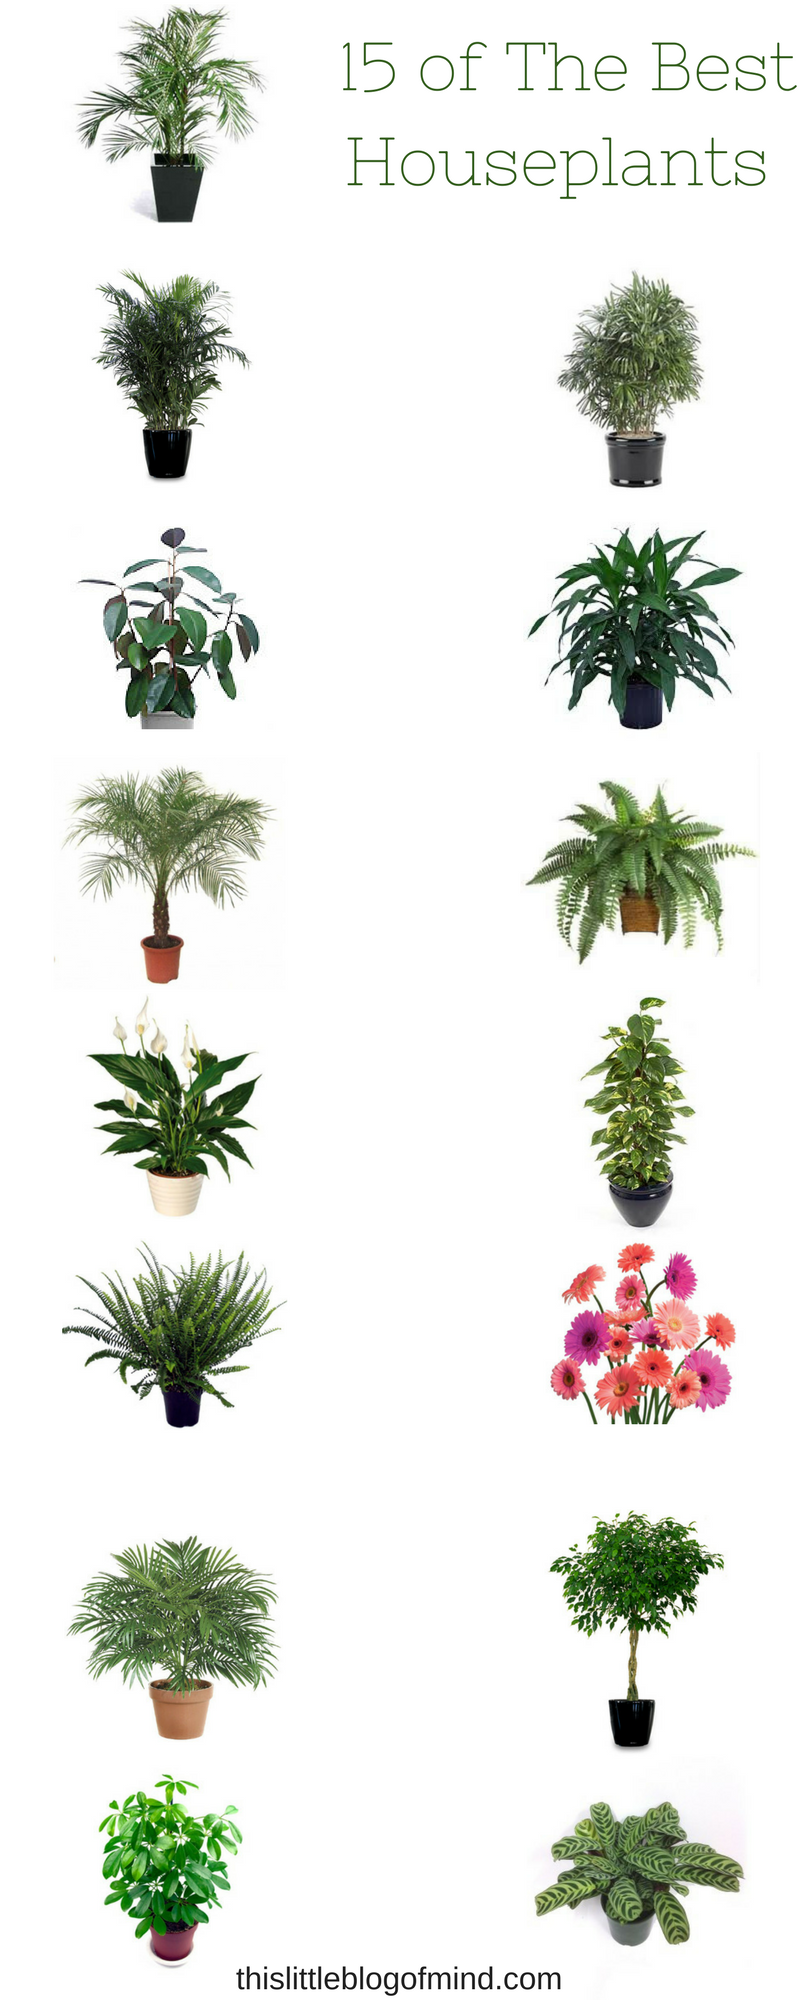 15 of the best plants to purify the air of your home or office | simplywellfamily.com